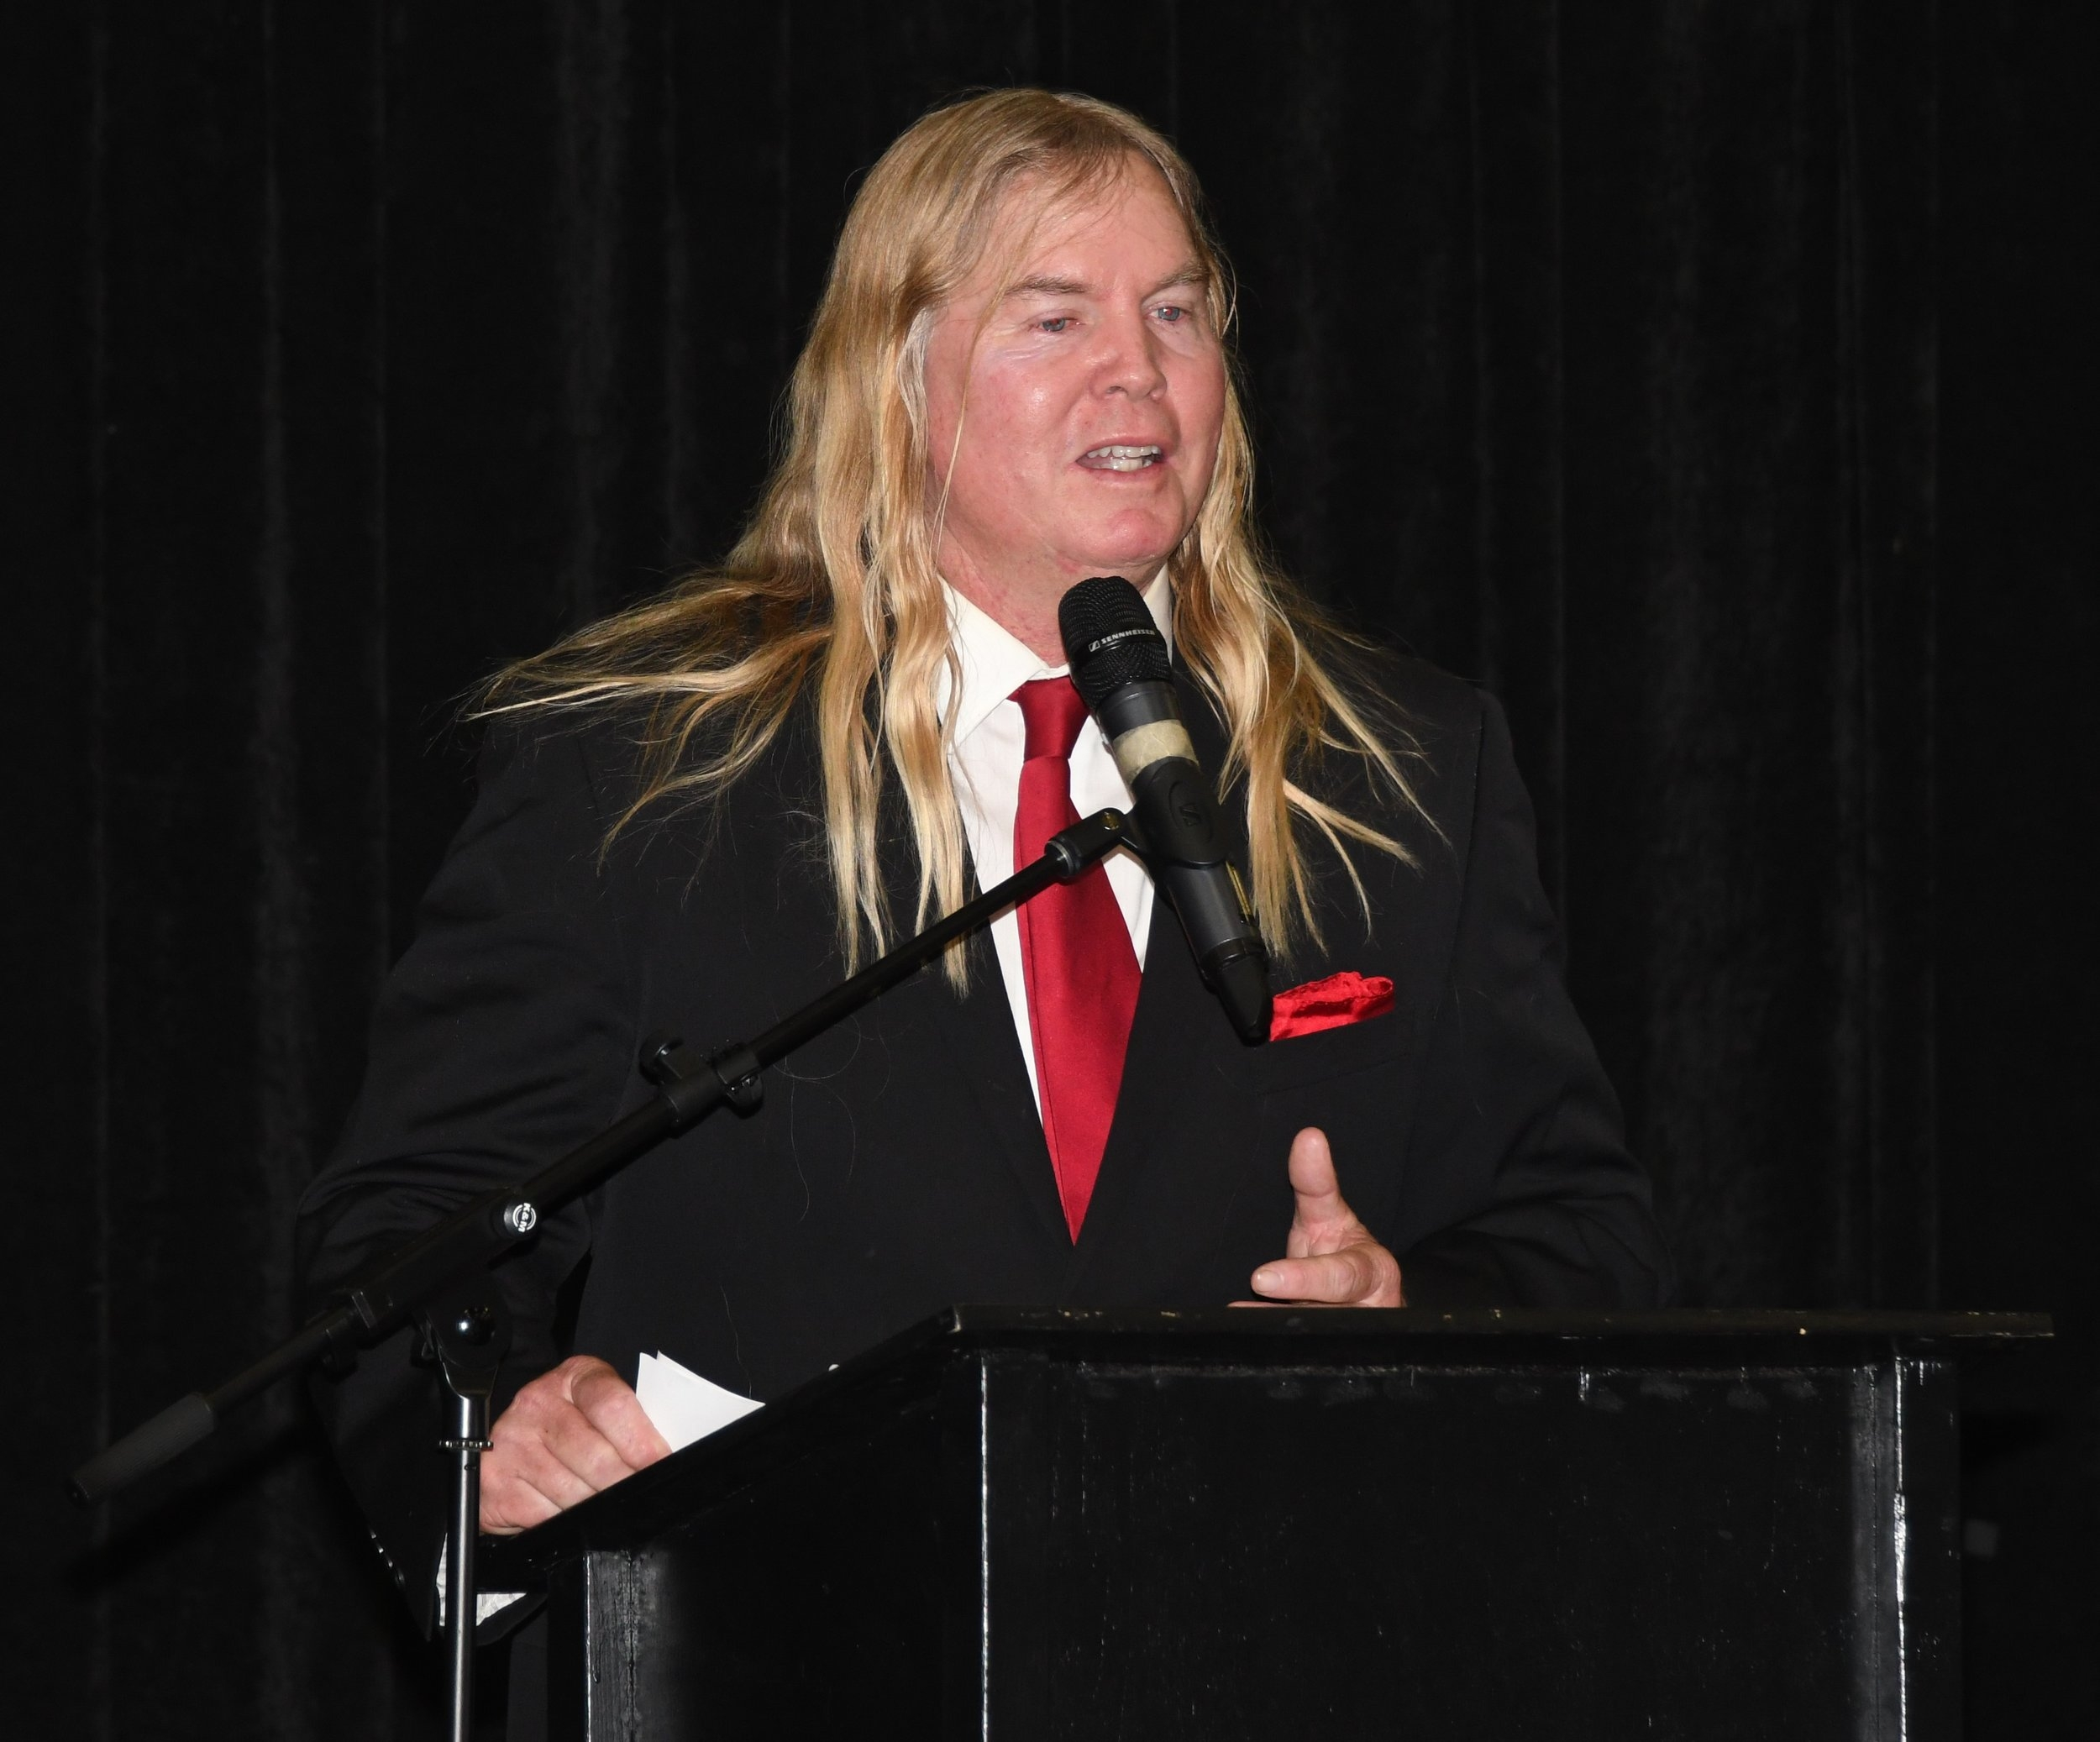 Click image to see more pictures from Hall of Fame banquet.